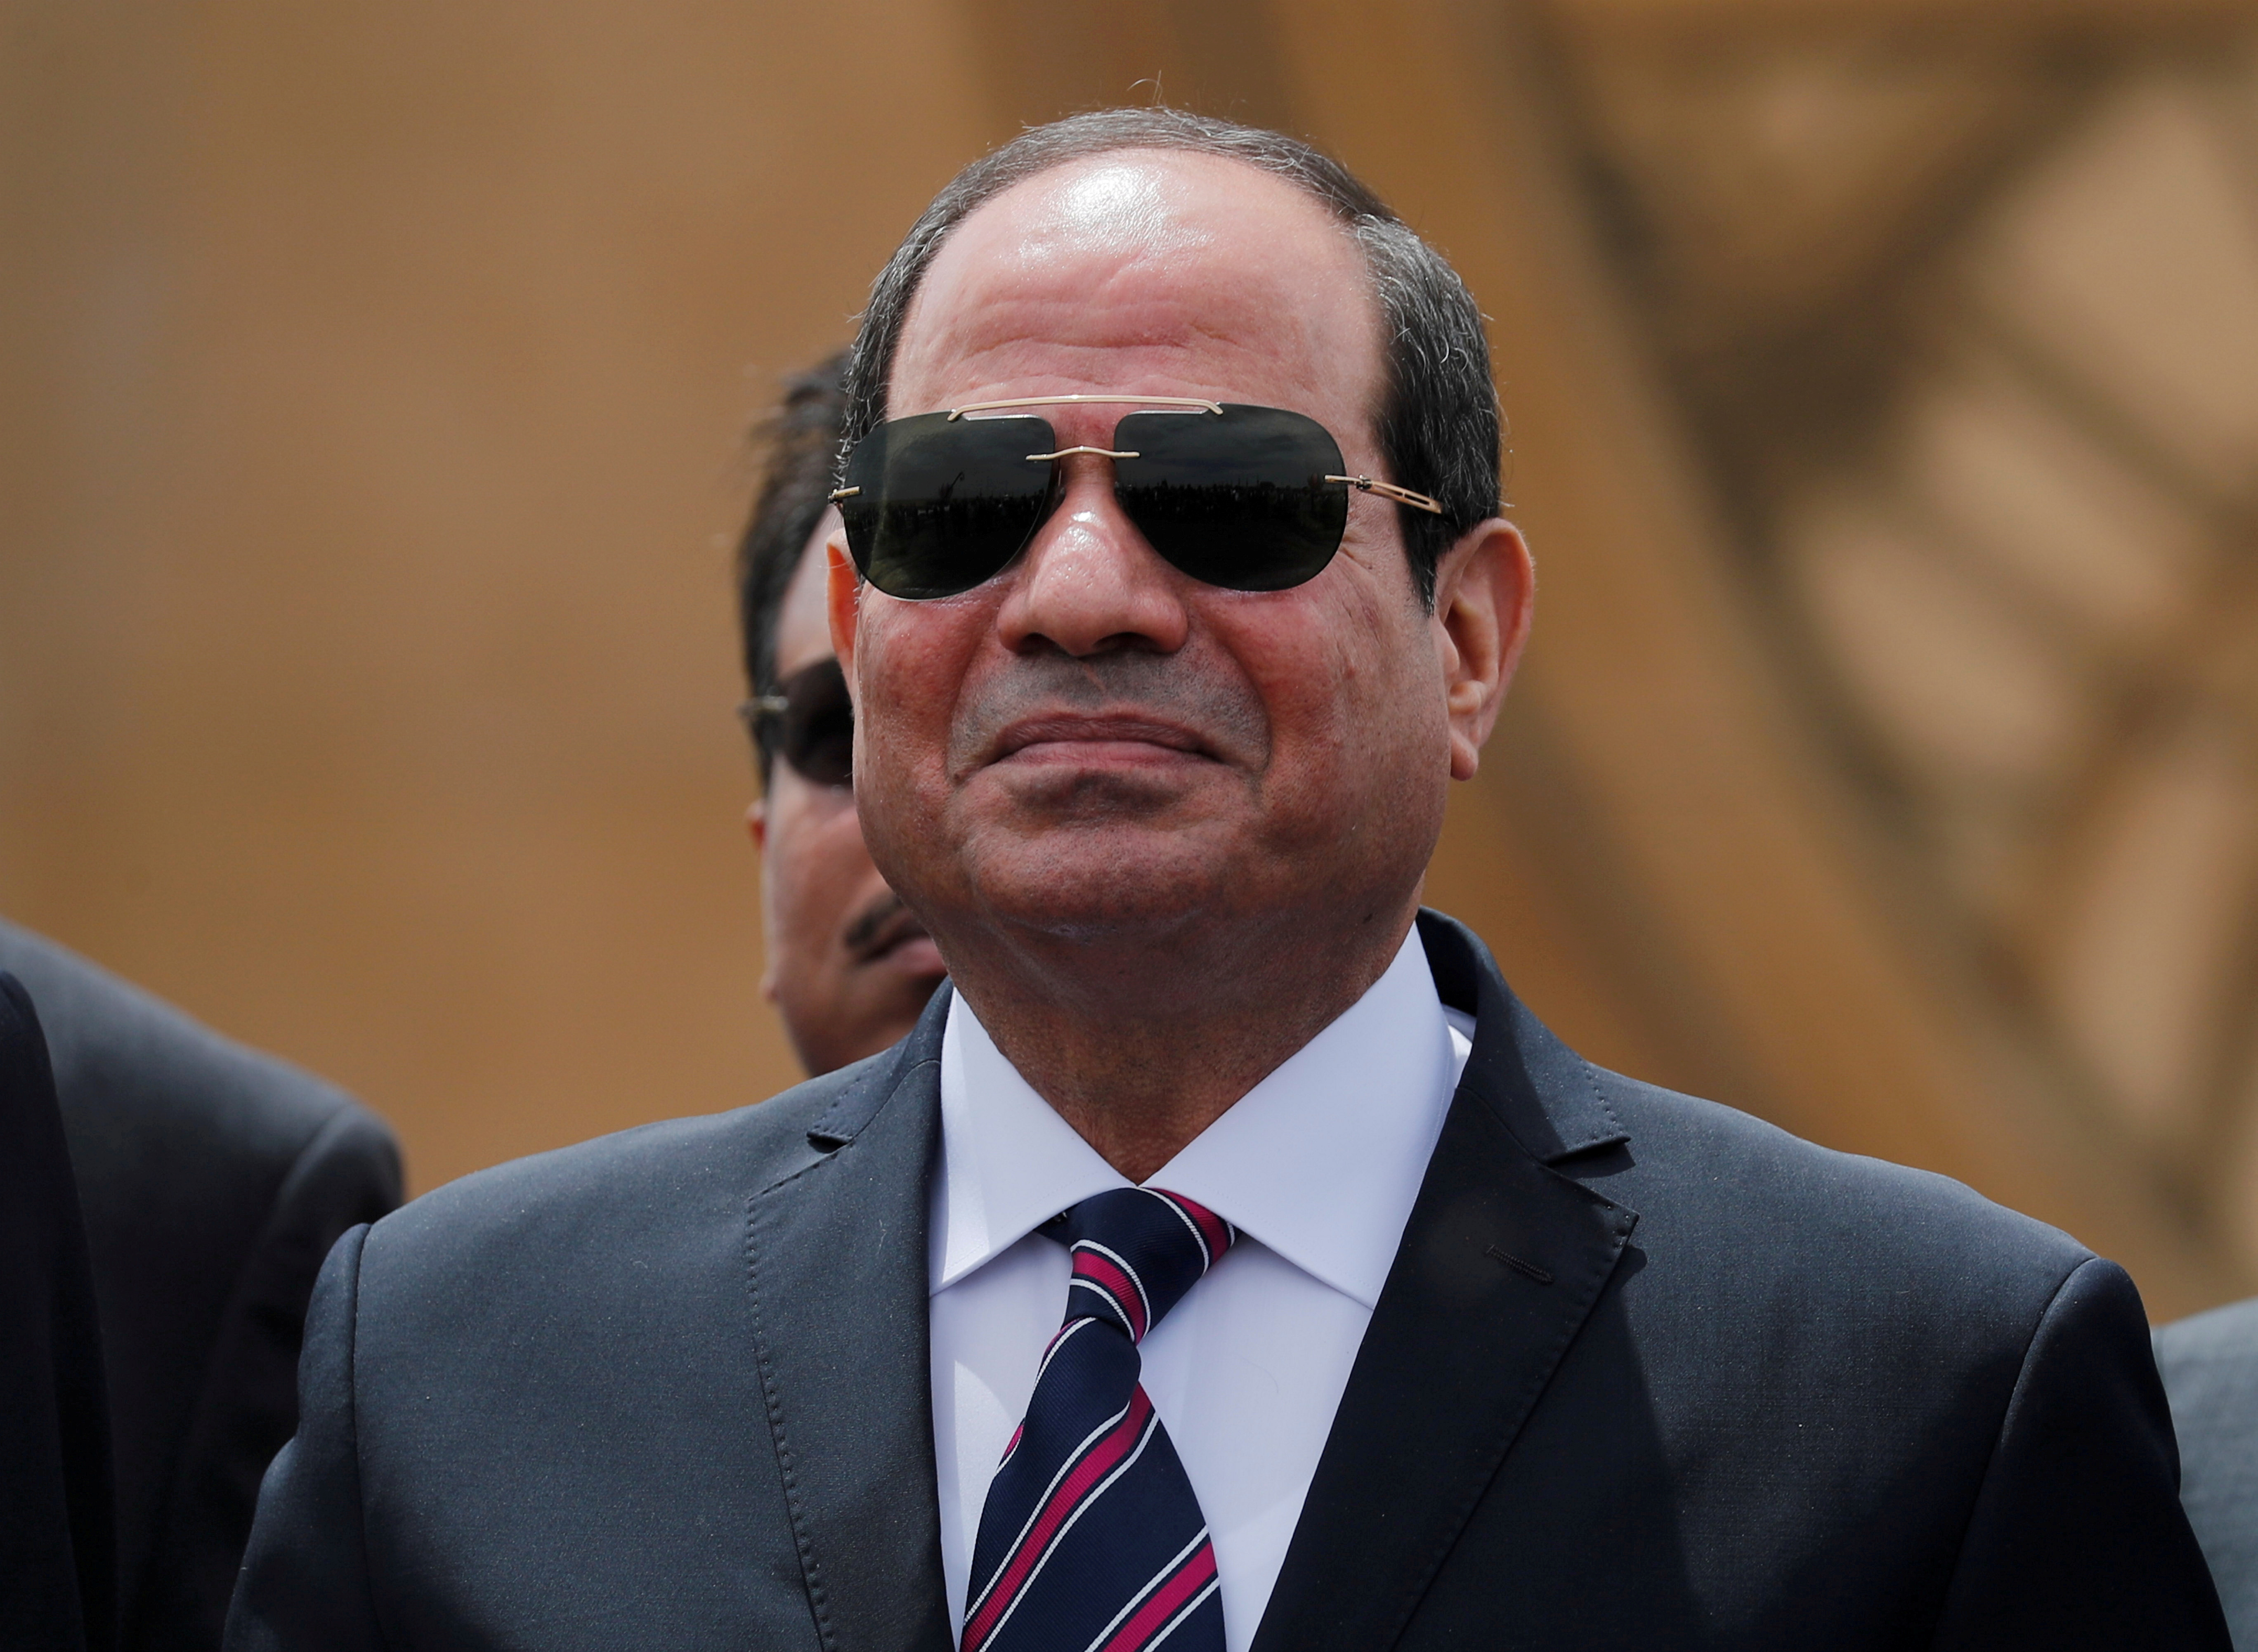 Egyptian President Abdel Fattah al-Sisi attends the opening ceremony of floating bridges and tunnel projects executed under the Suez Canal in Ismailia, Egypt May 5, 2019. REUTERS/Amr Abdallah Dalsh/File Photo